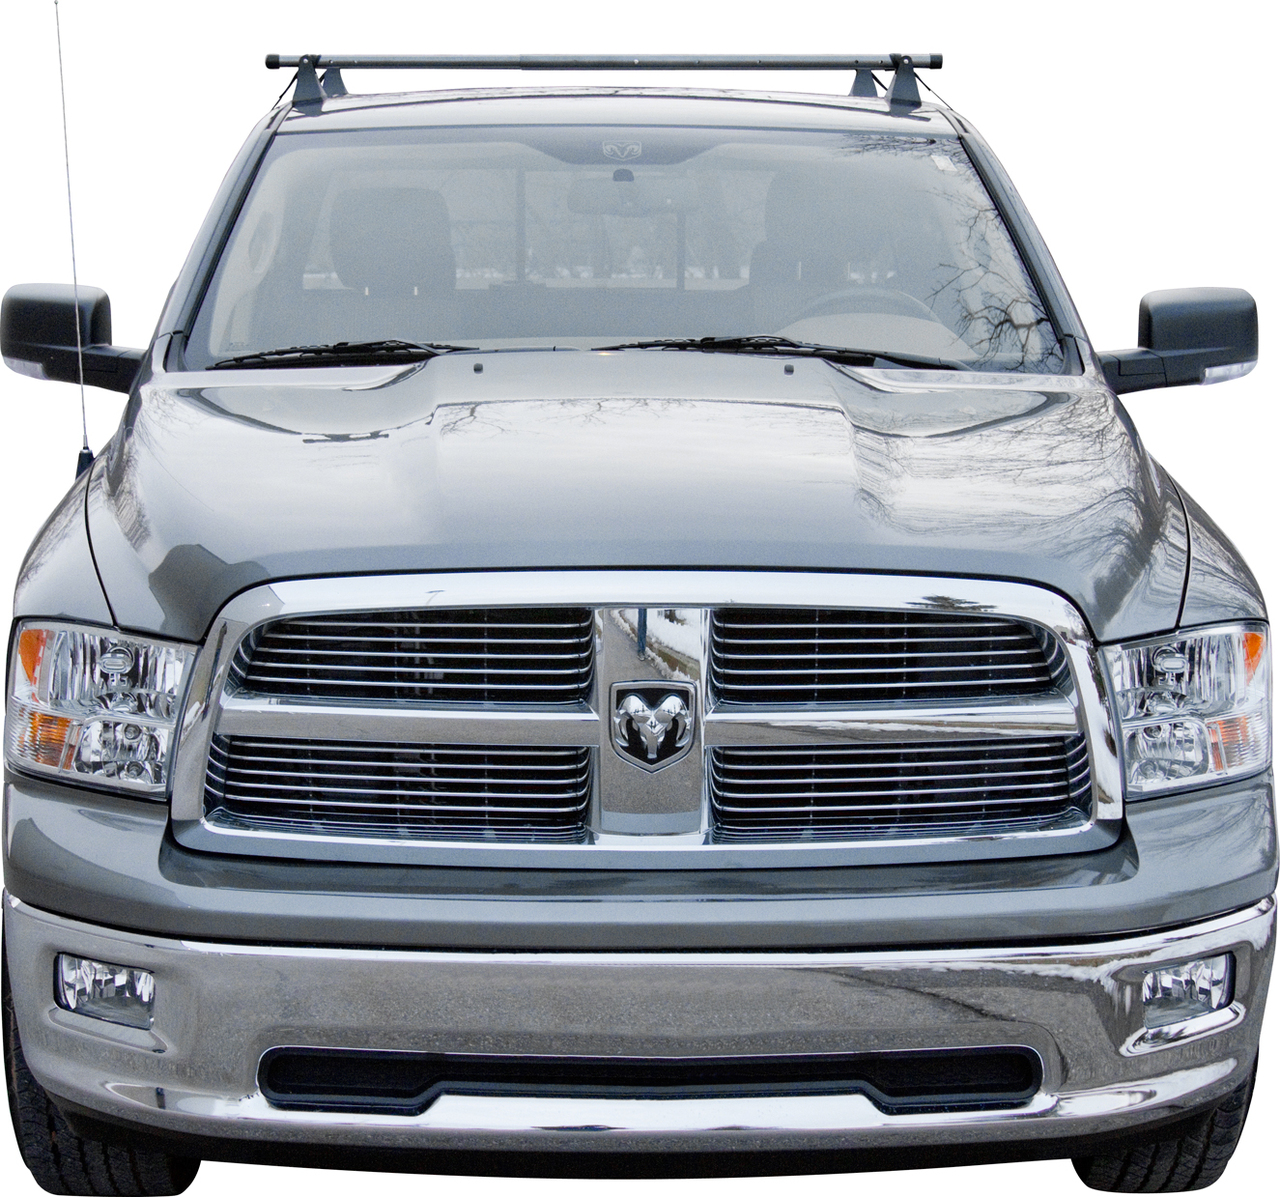 Removable Crossbars For Trucks And Suvs Storeyourboard Com